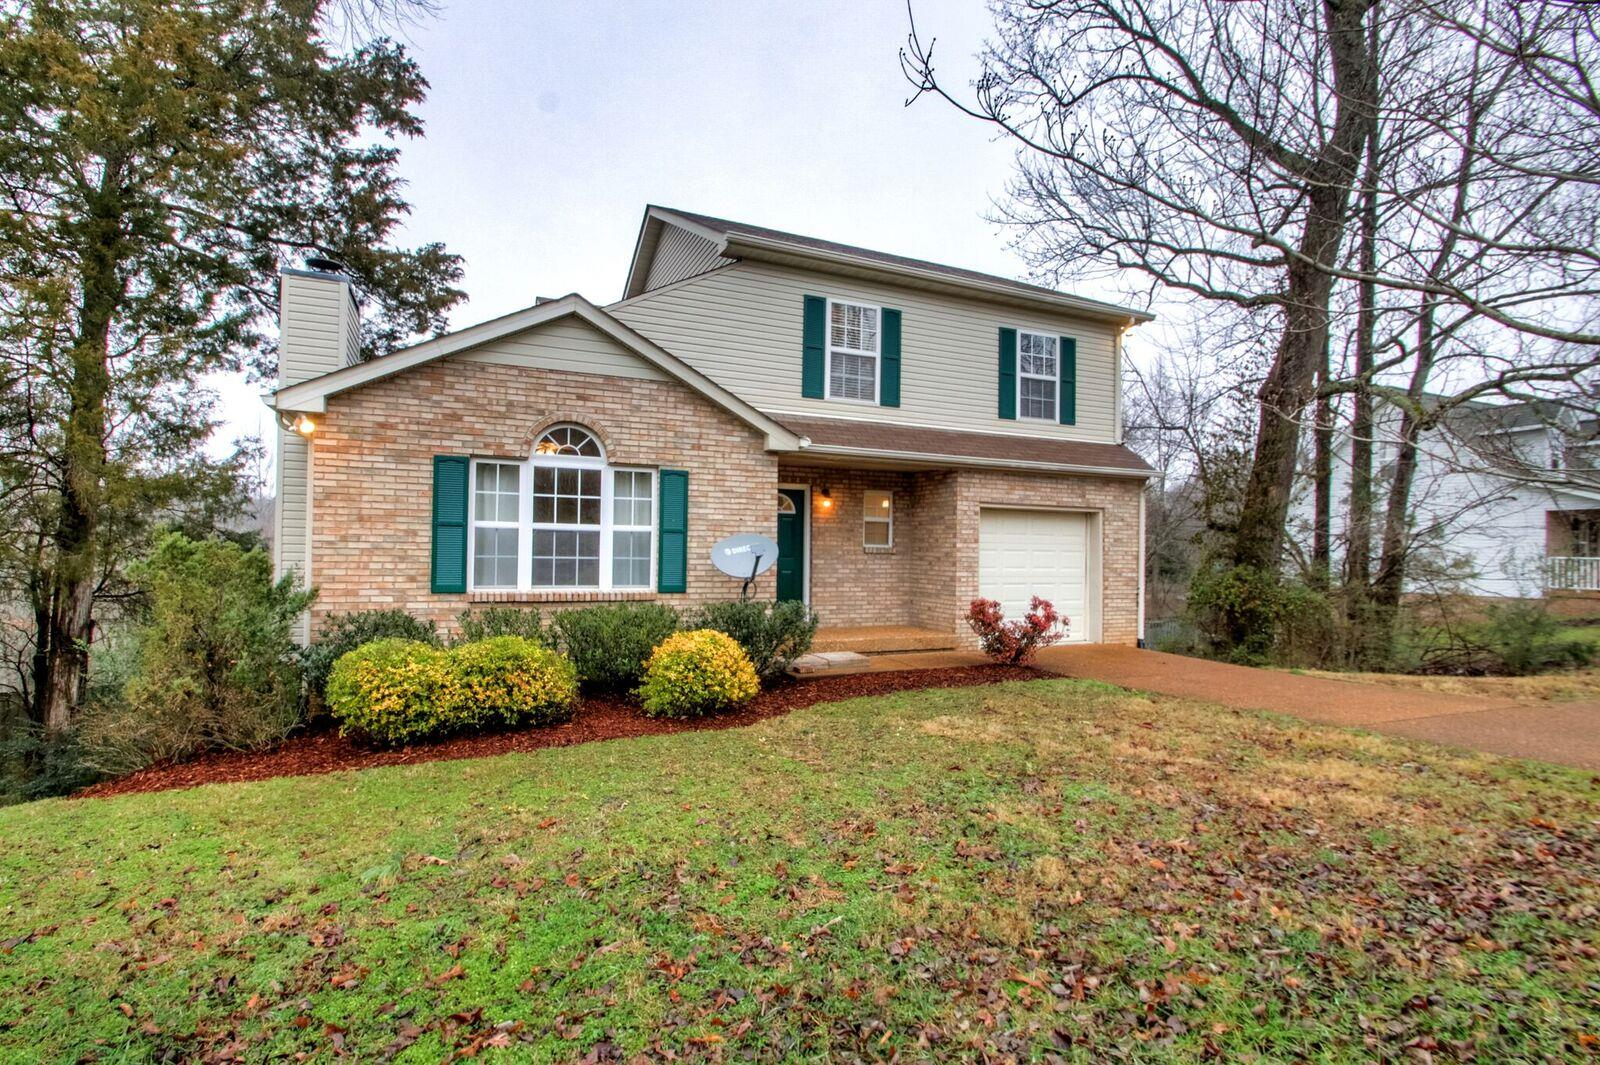 7520 Cherokee Hills Rd, Fairview in Williamson County County, TN 37062 Home for Sale